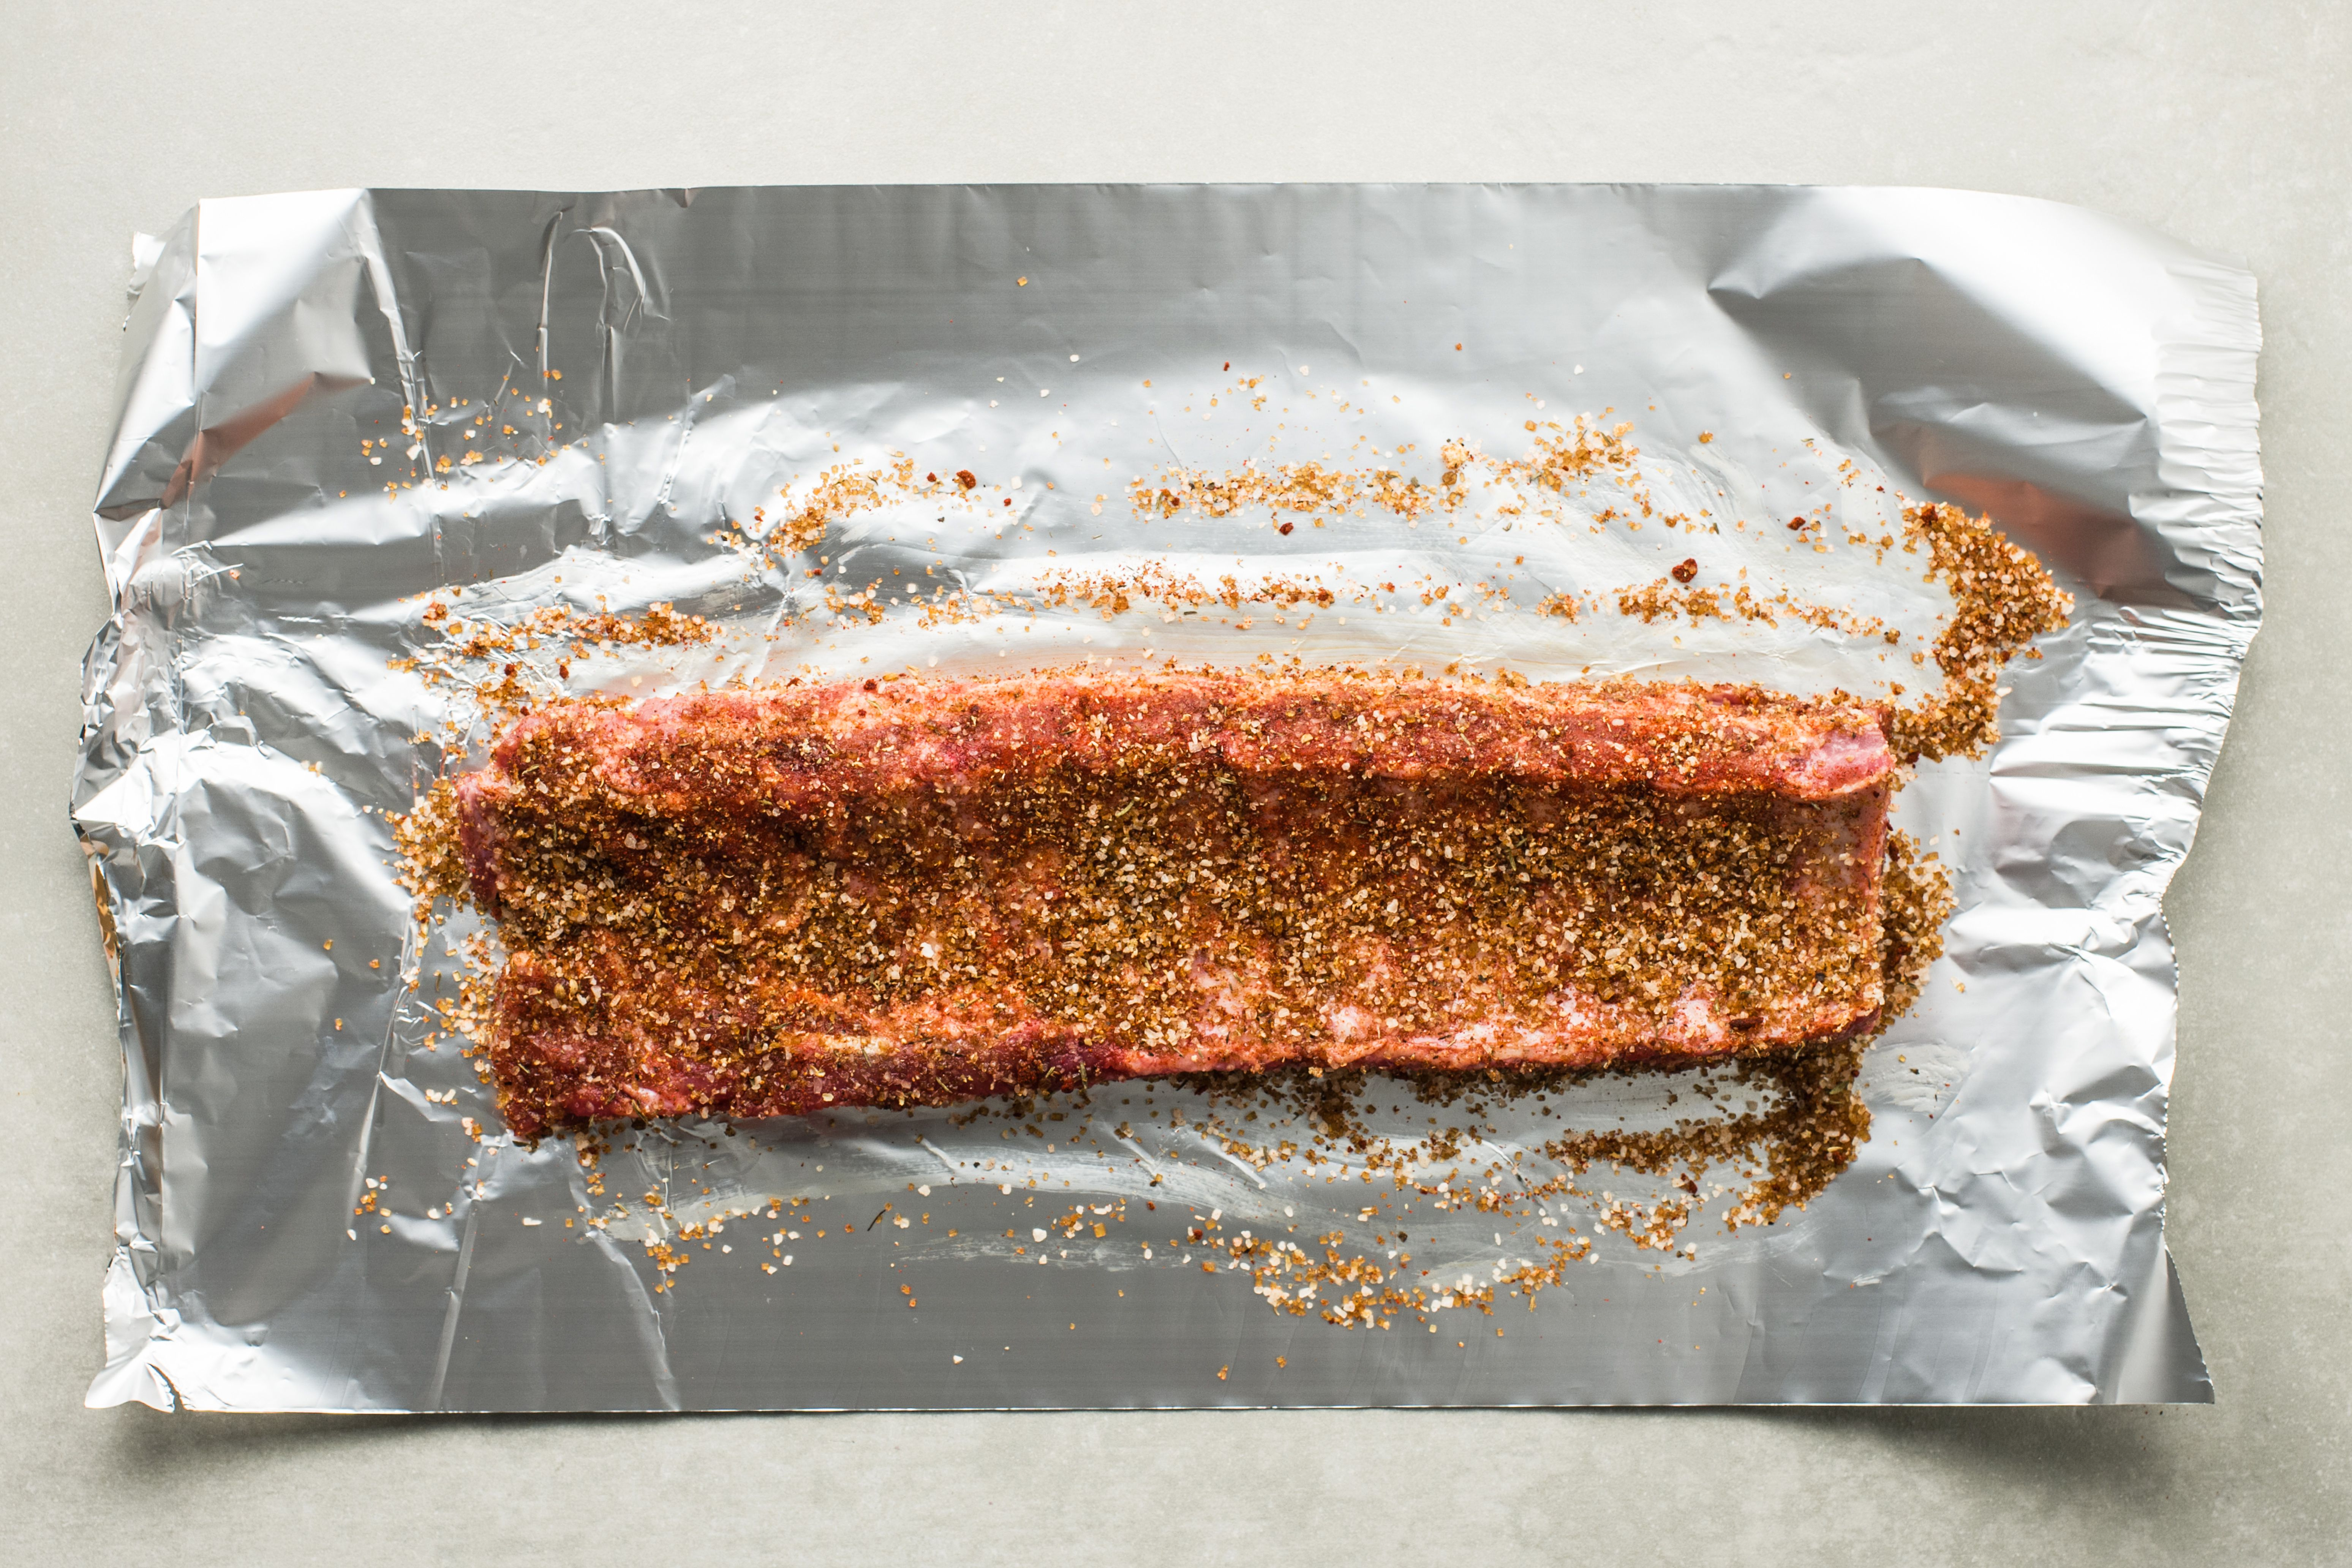 Rib rack covered in spices on a piece of aluminum foil